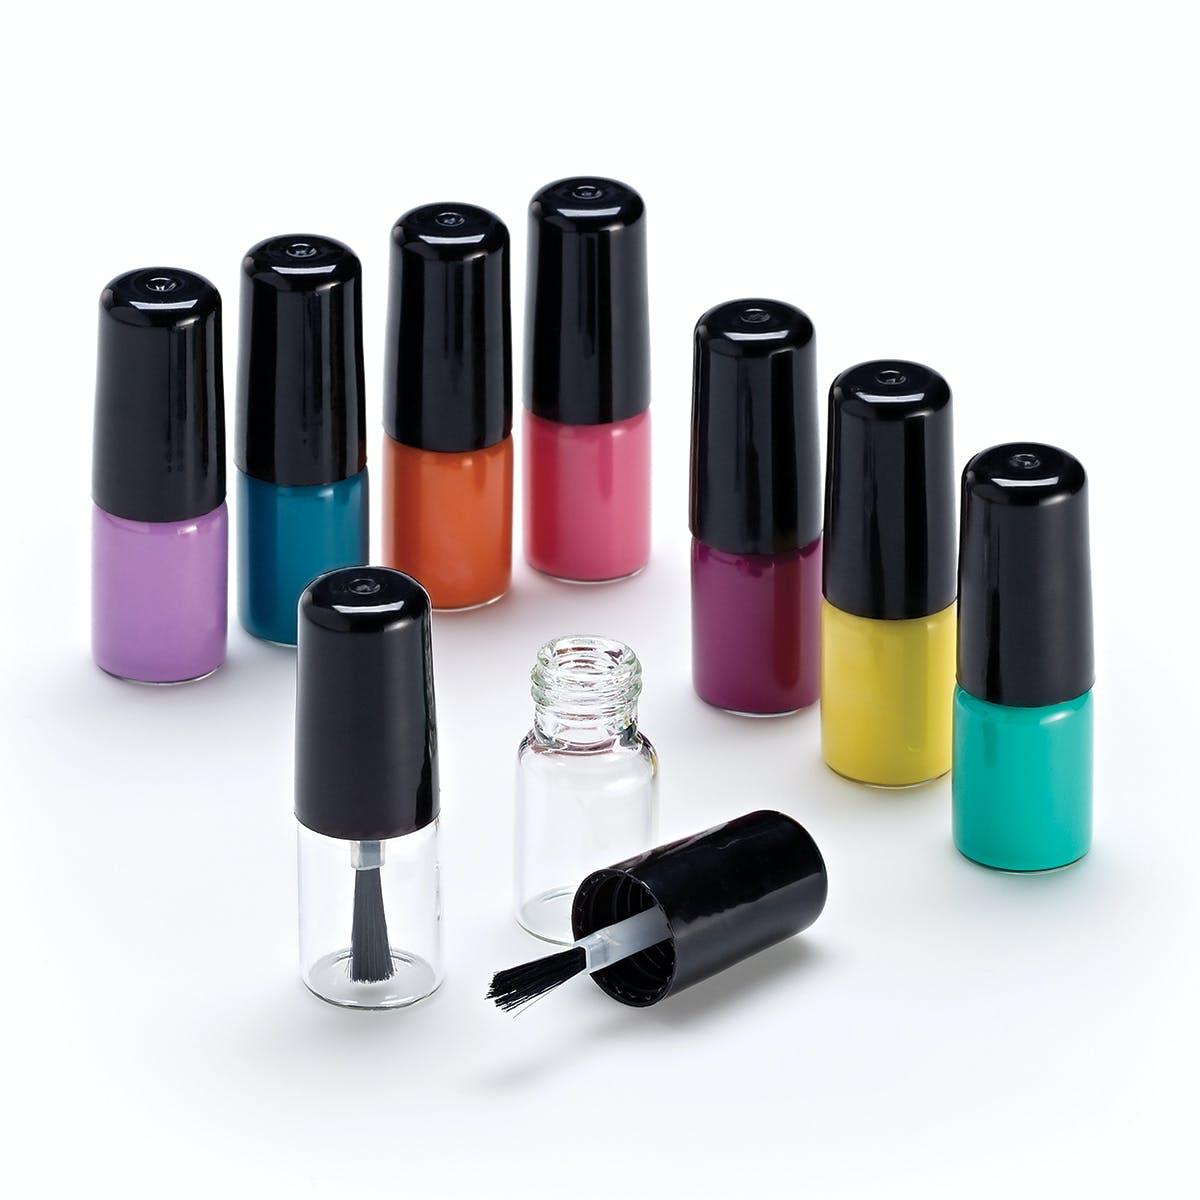 Mini Nail Polish Bottle Cosmetics bottle sold by Qosmedix